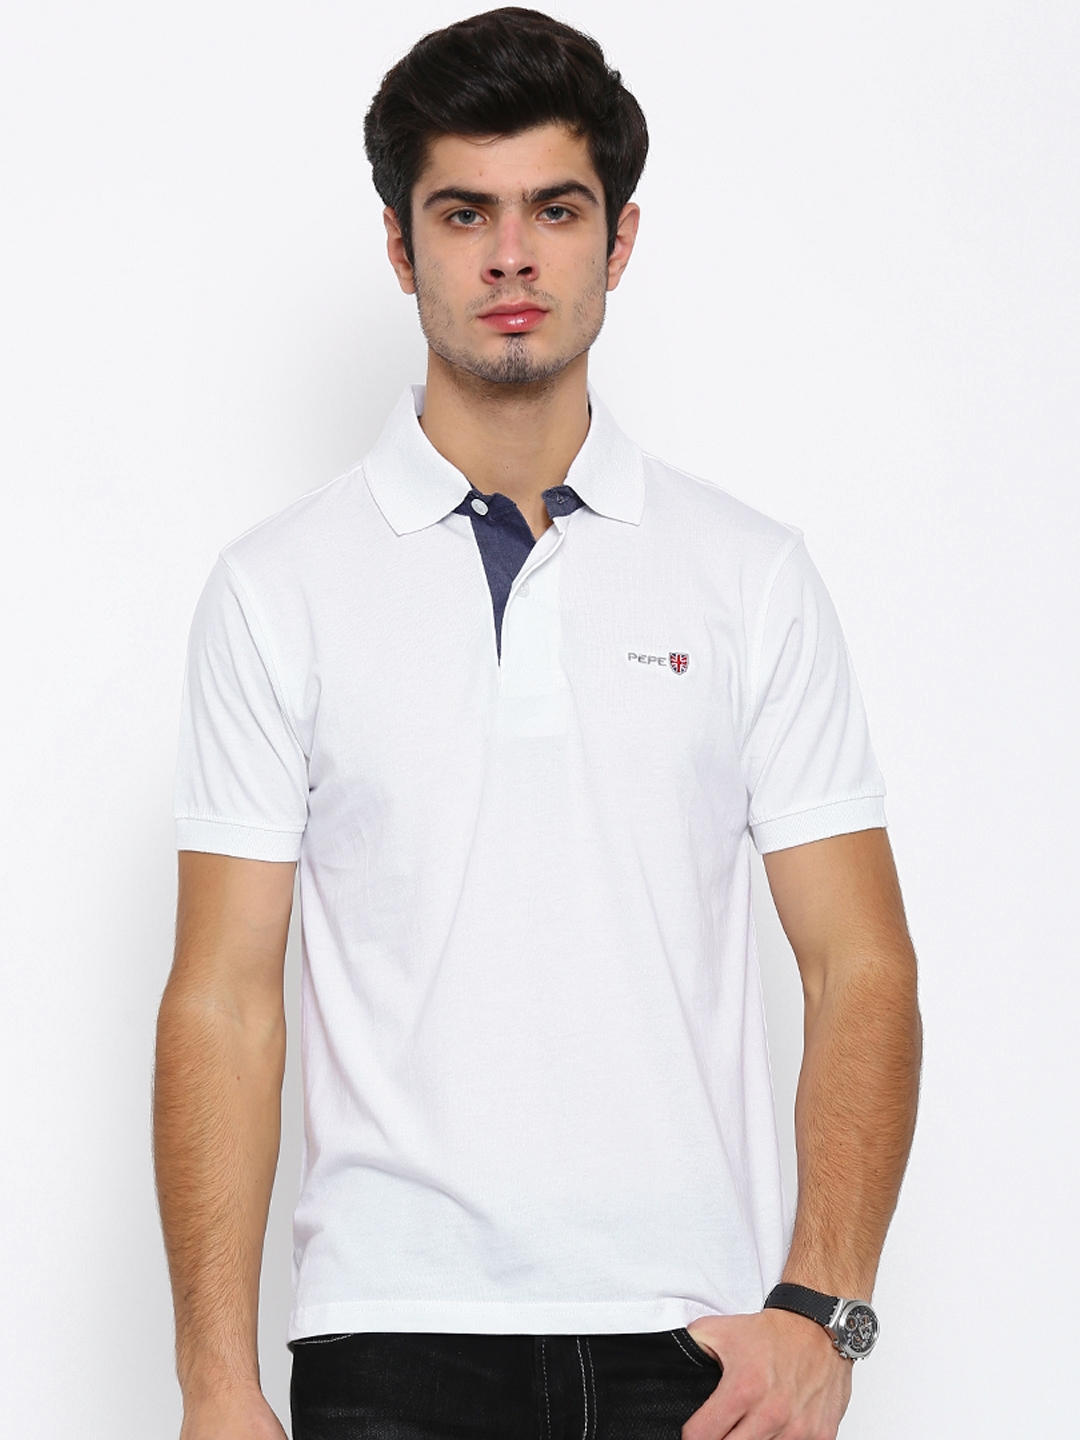 20d1ab45855 Buy Pepe Jeans Men White Solid Polo T Shirt - Tshirts for Men ...